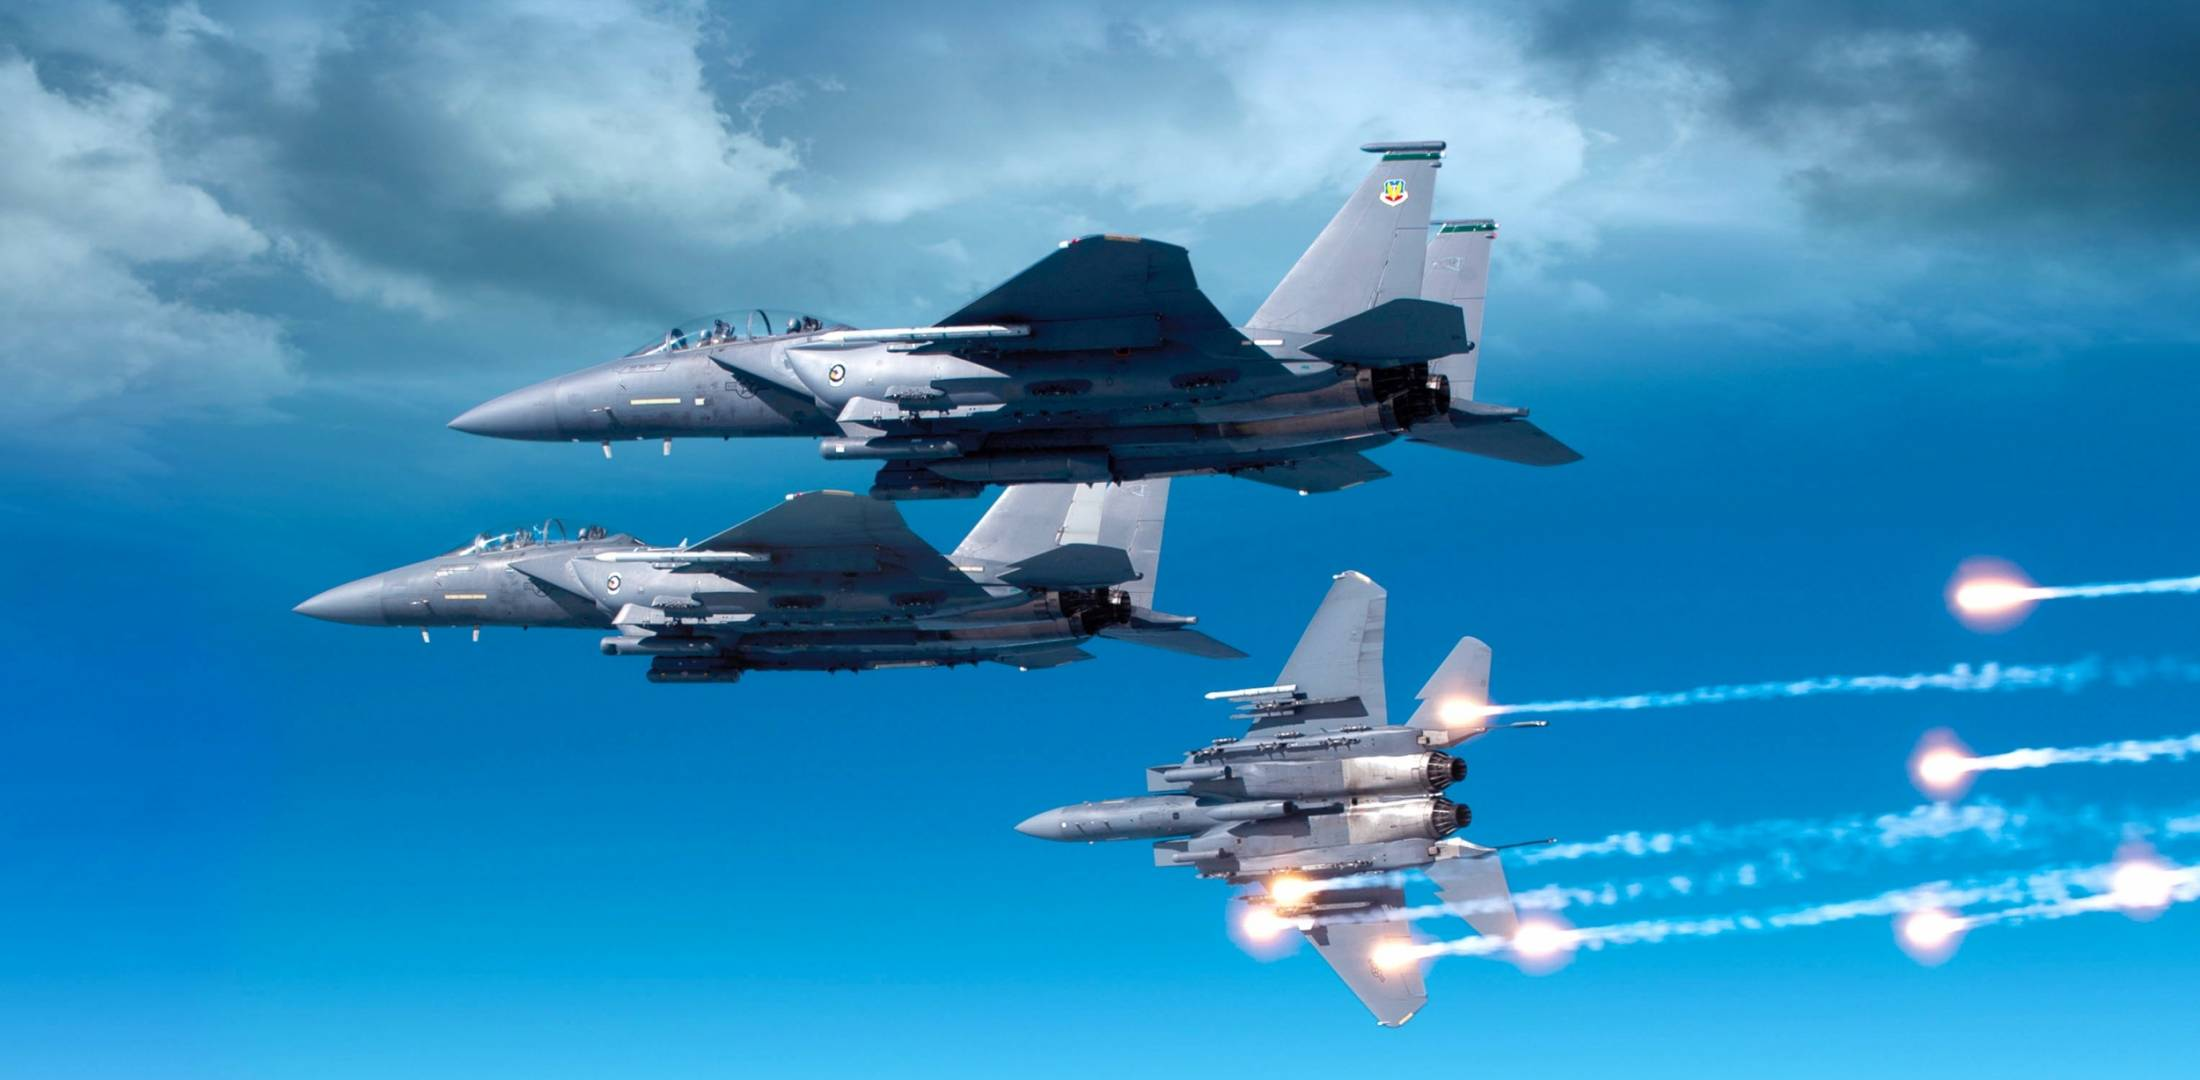 F-15s in flight